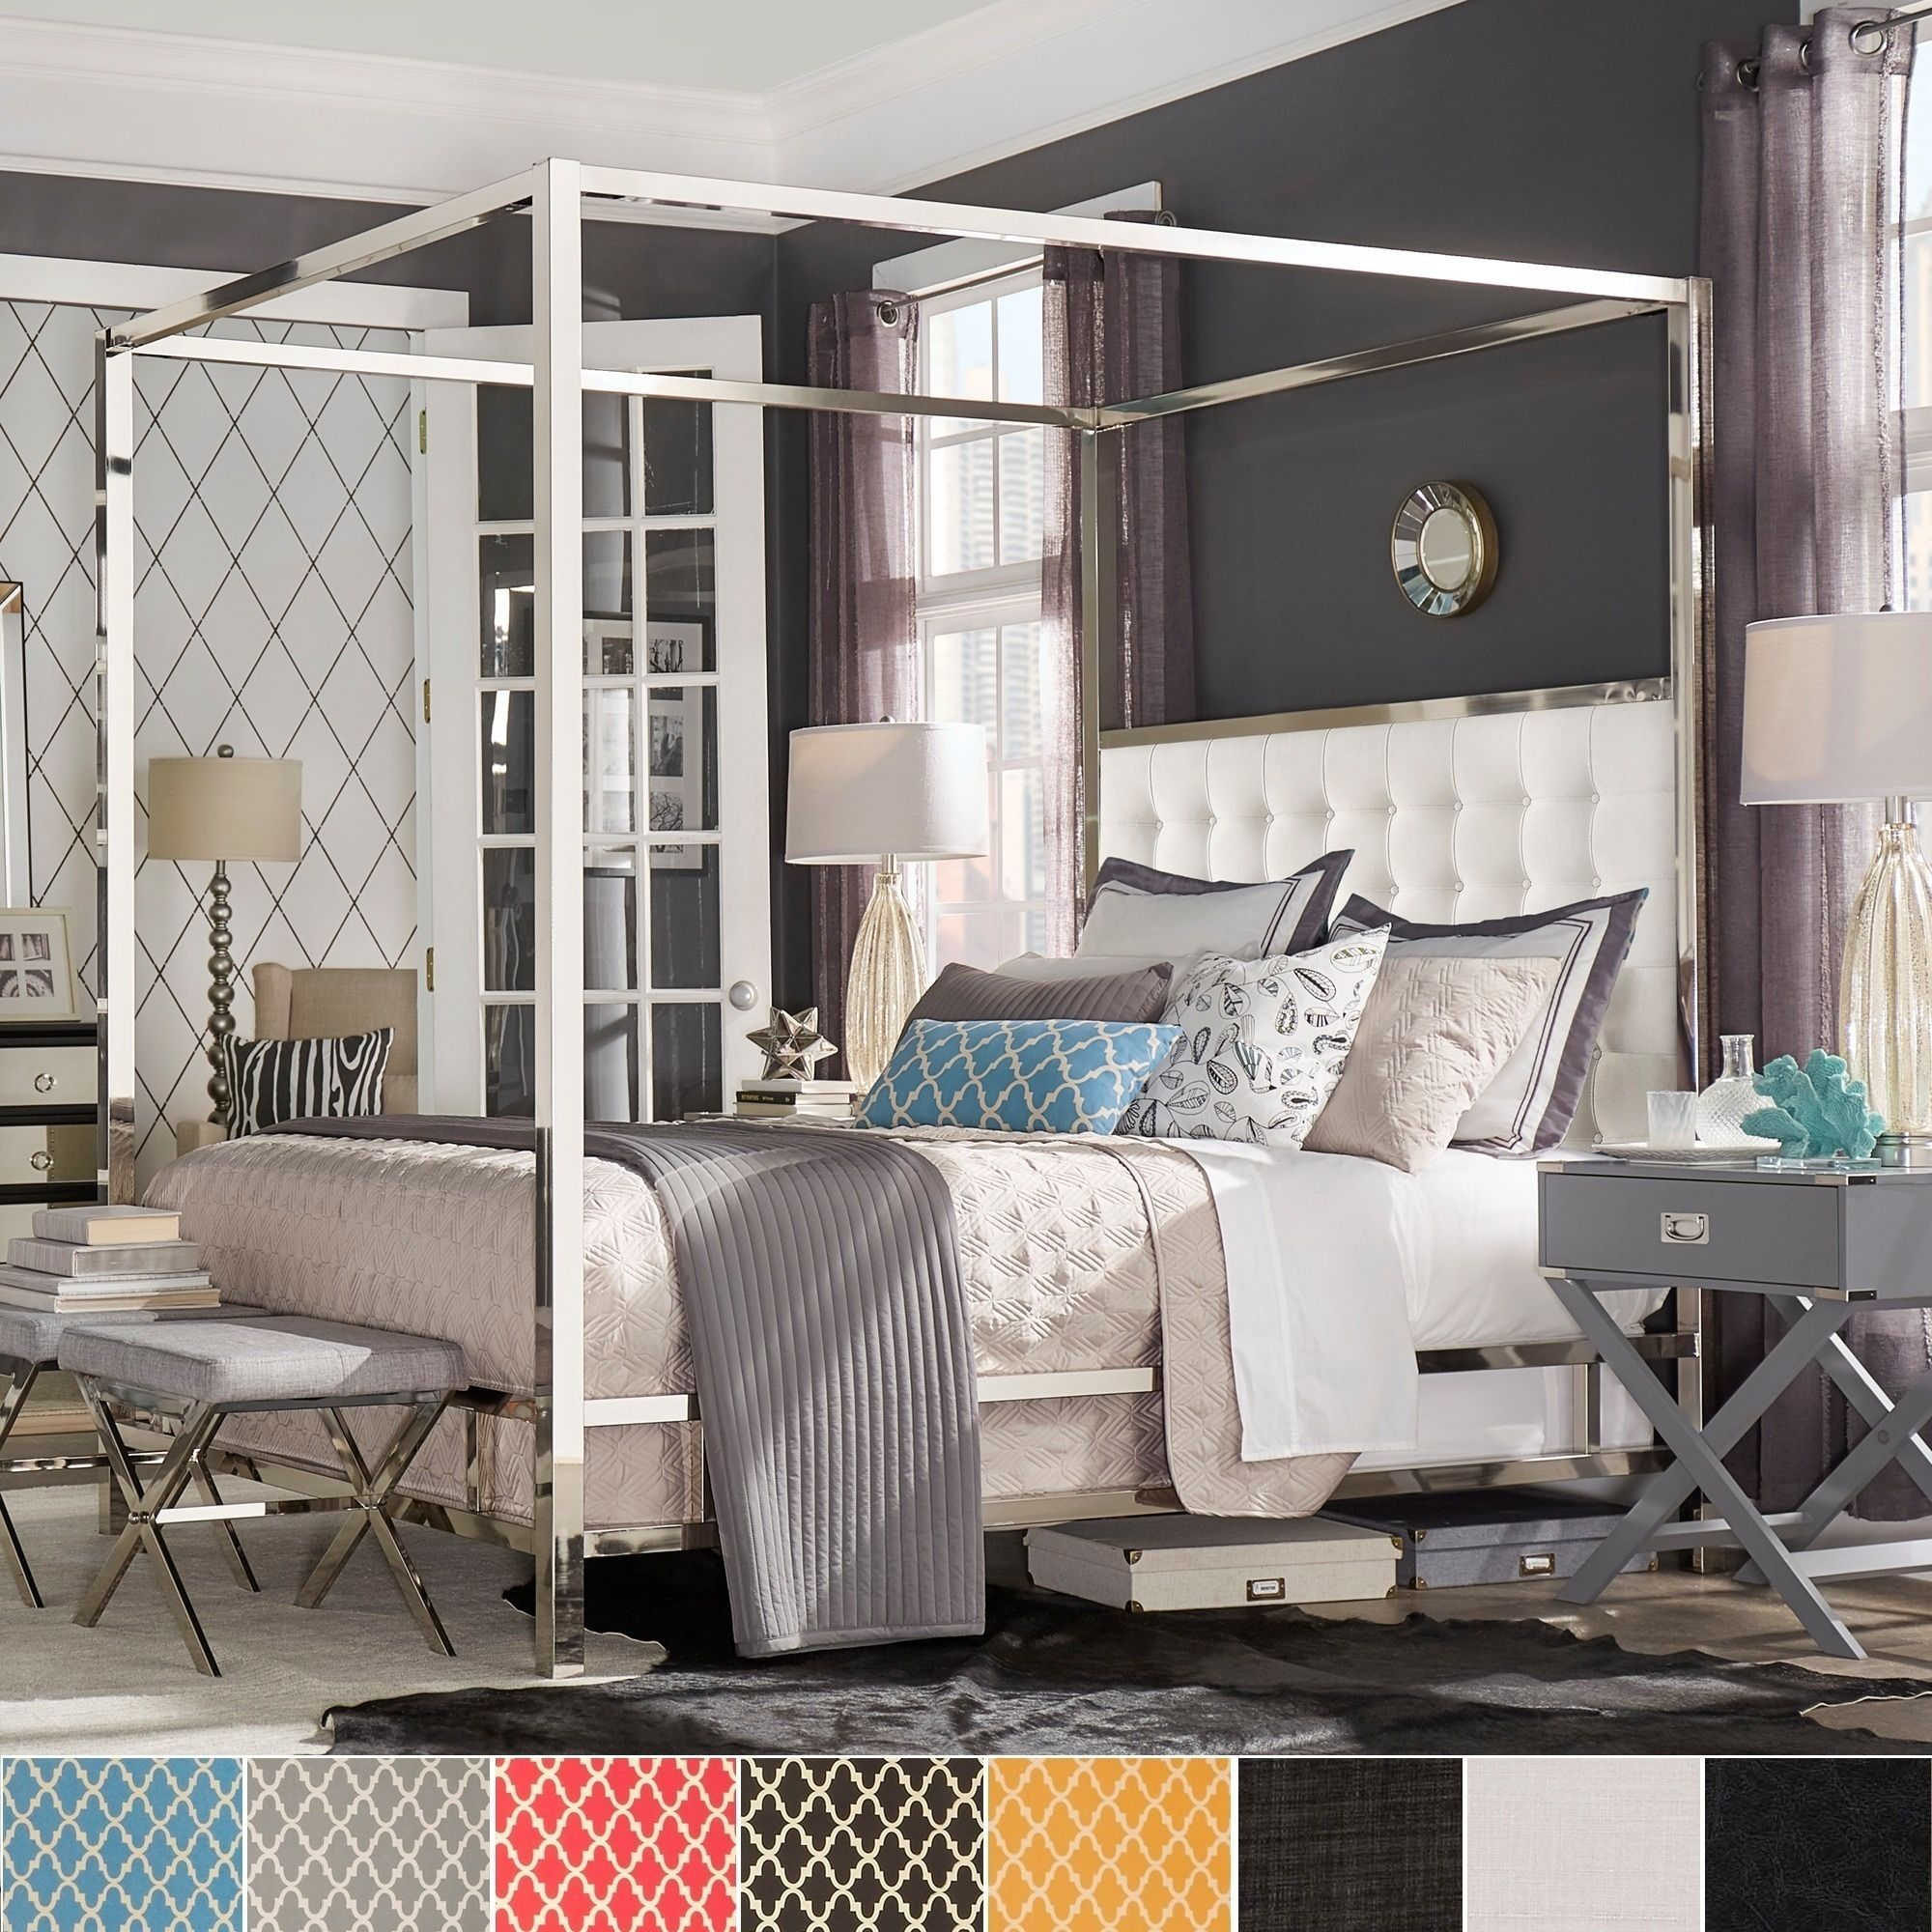 Black Friday Furniture Deals Bedroom Furniture: Free Shipping on orders over  $45! Create the